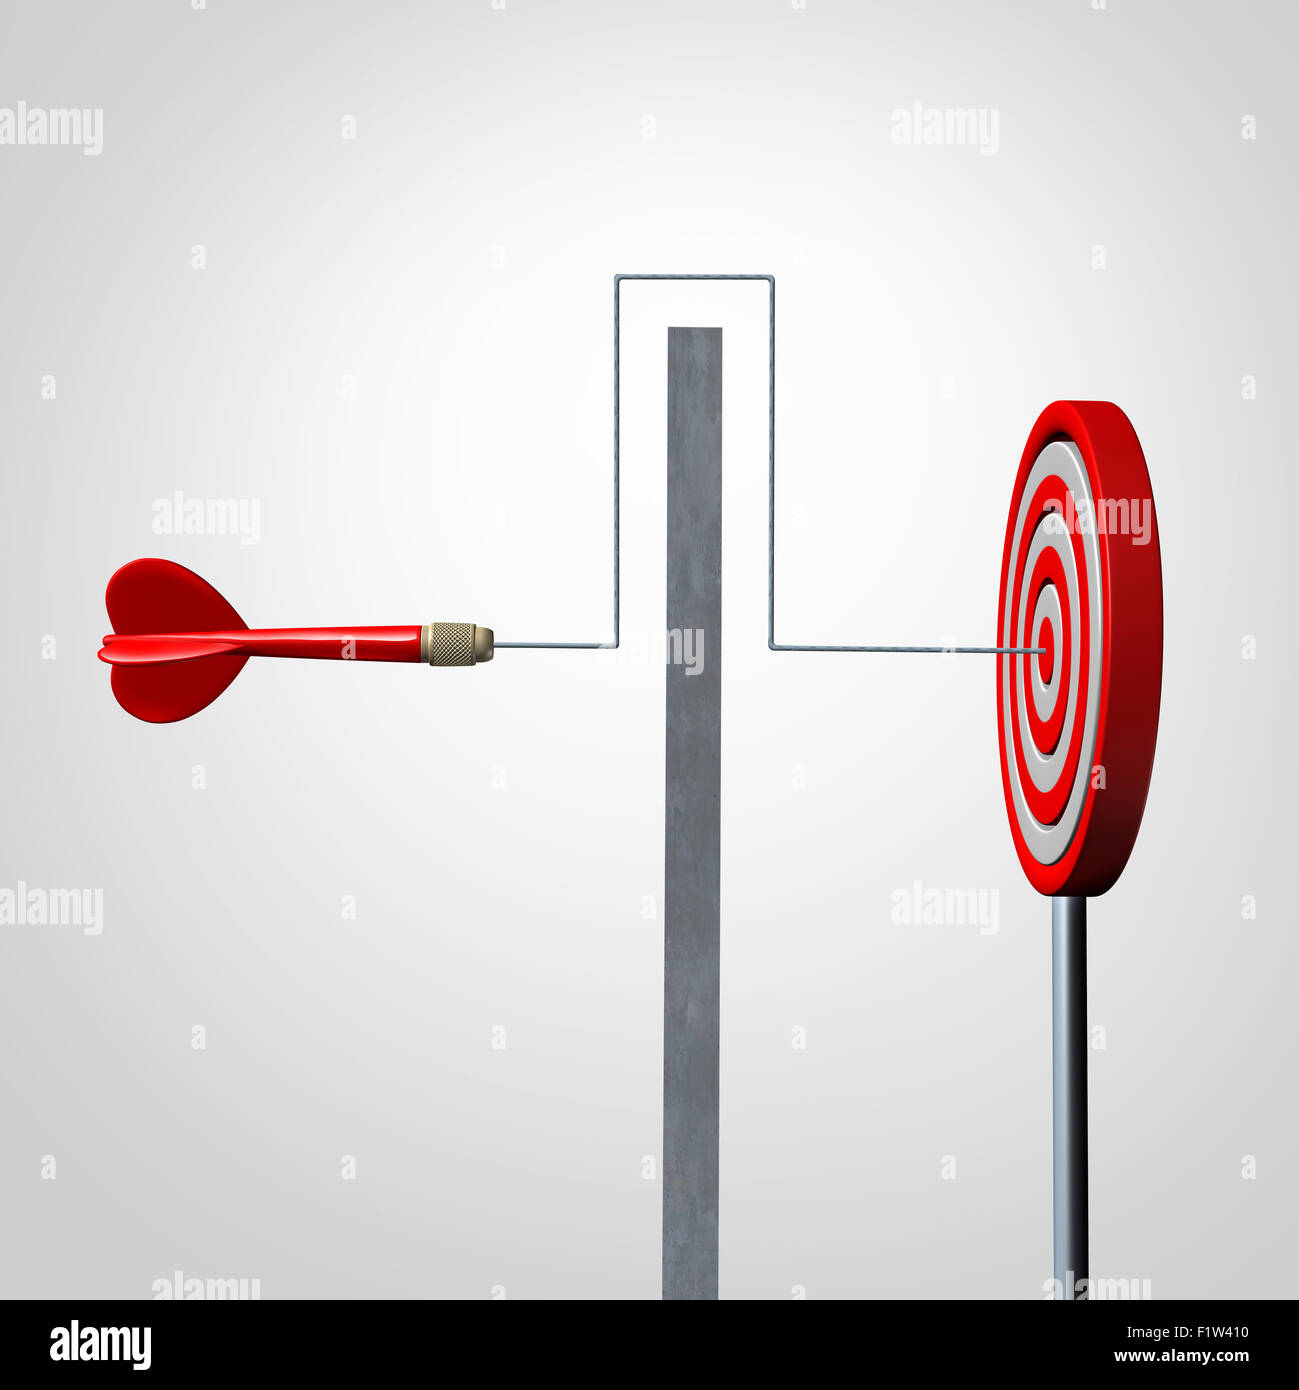 Around a barrier business concept as a red dart solving an obstacle problem by averting a wall and hitting the target Stock Photo